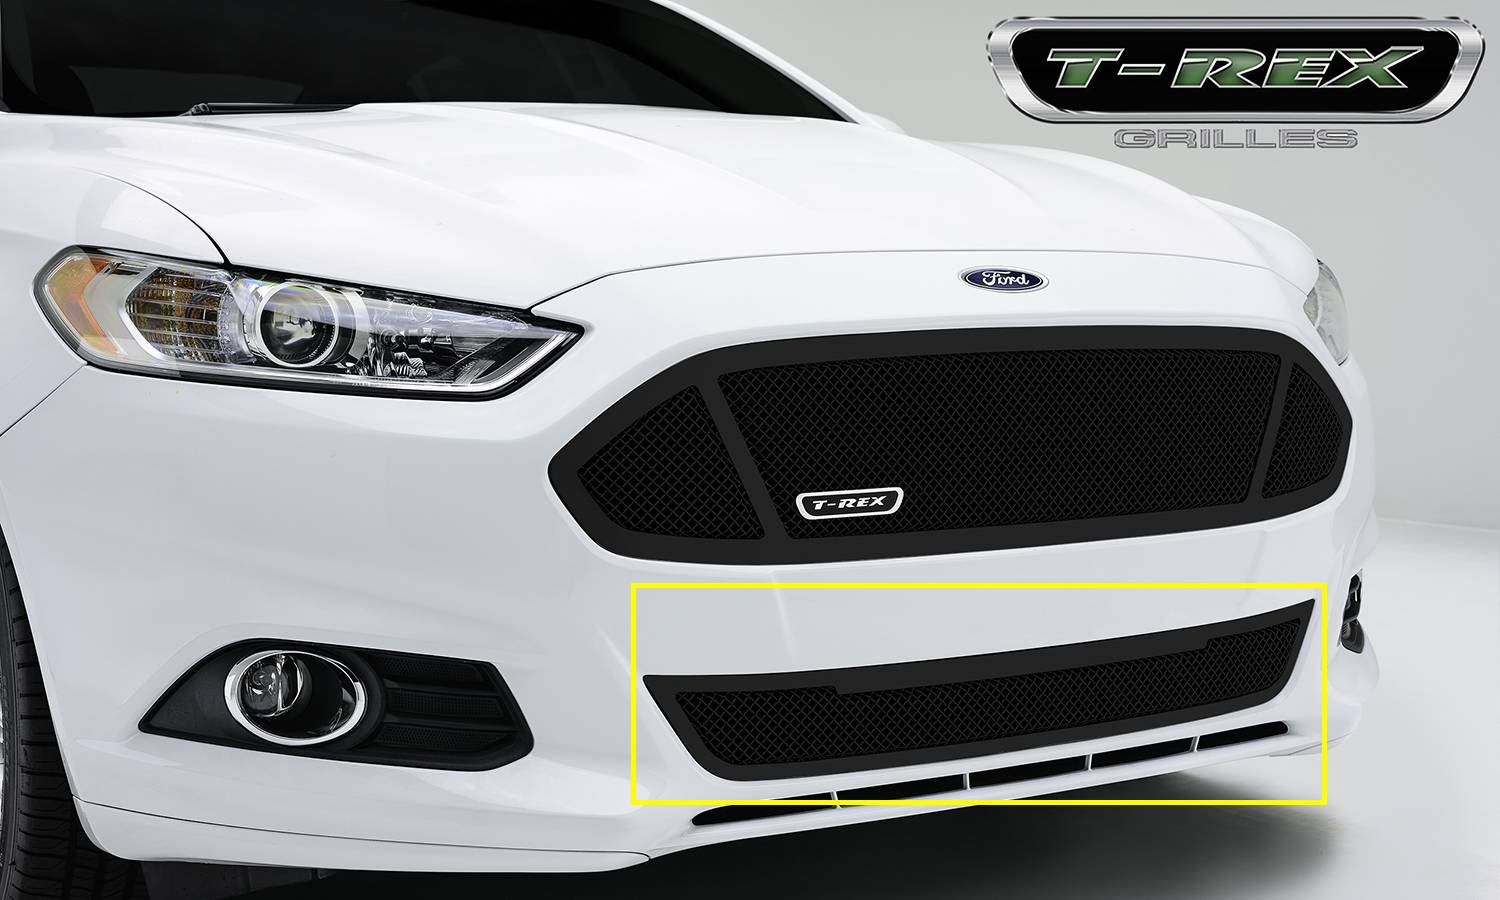 T-REX Ford Fusion Upper Class, Formed Mesh Grille, Bumper, Replacement, 1 Pc, Black Powdercoated Mild Steel - Pt # 52531